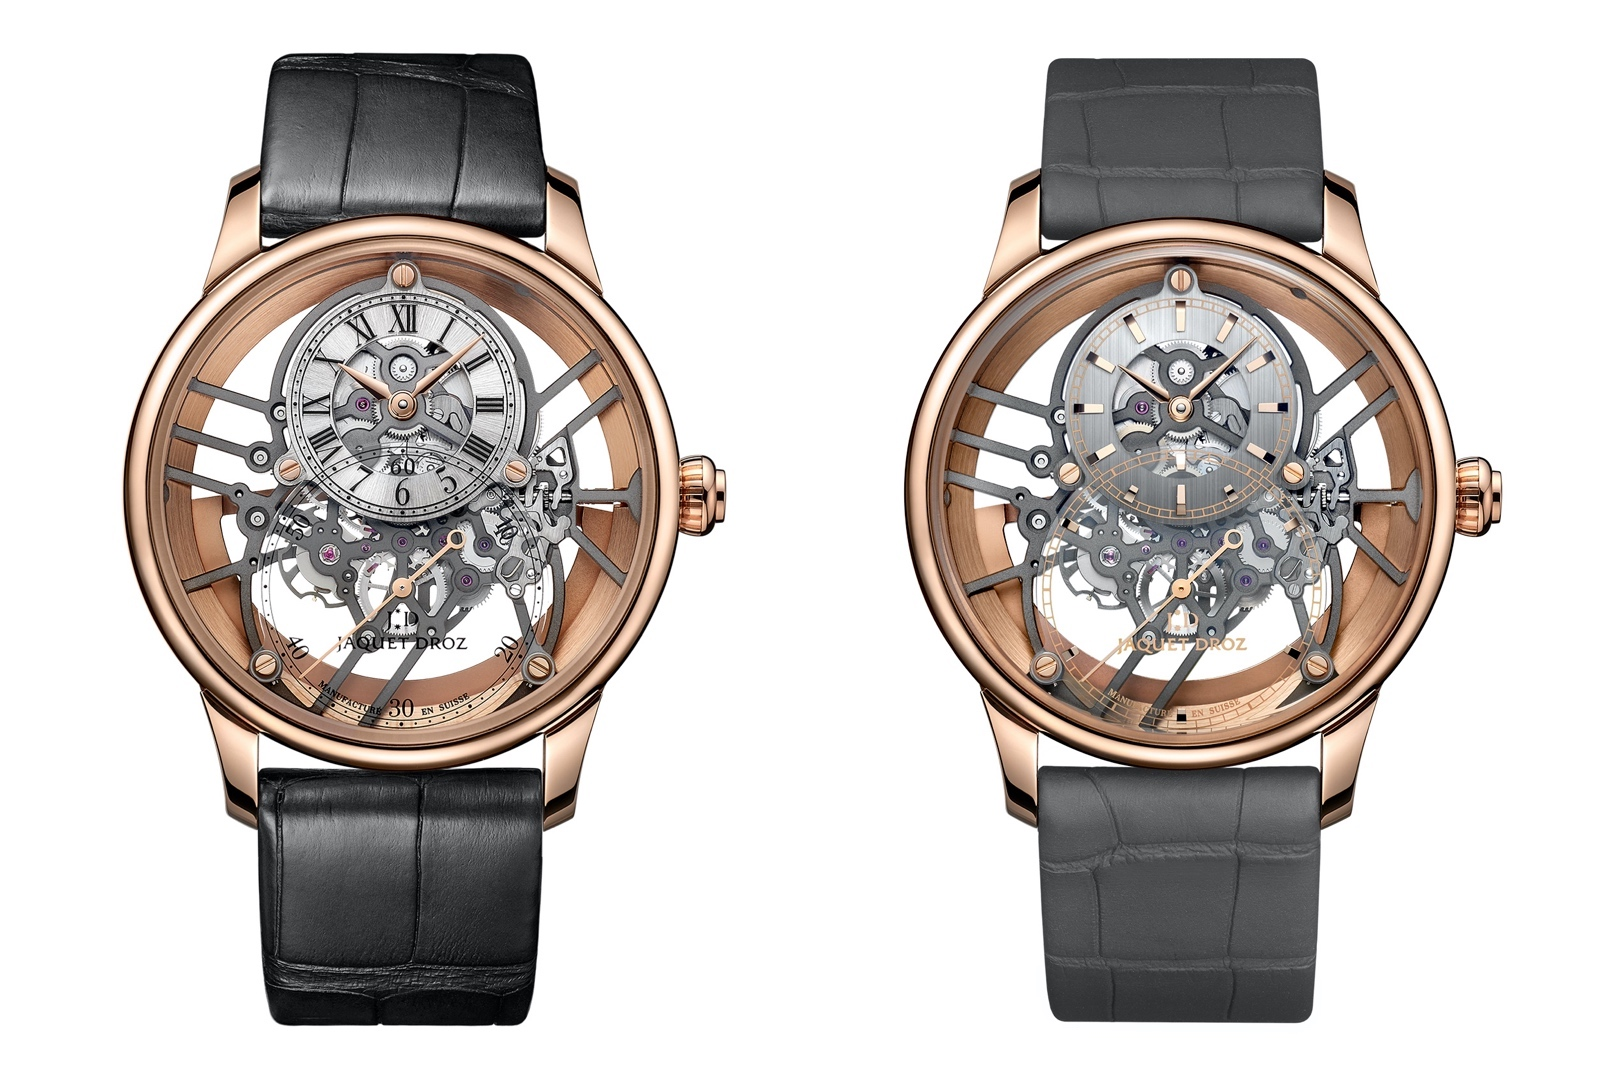 Jaquet Droz Grande Seconde Skelet-One 2020 - rose gold duo